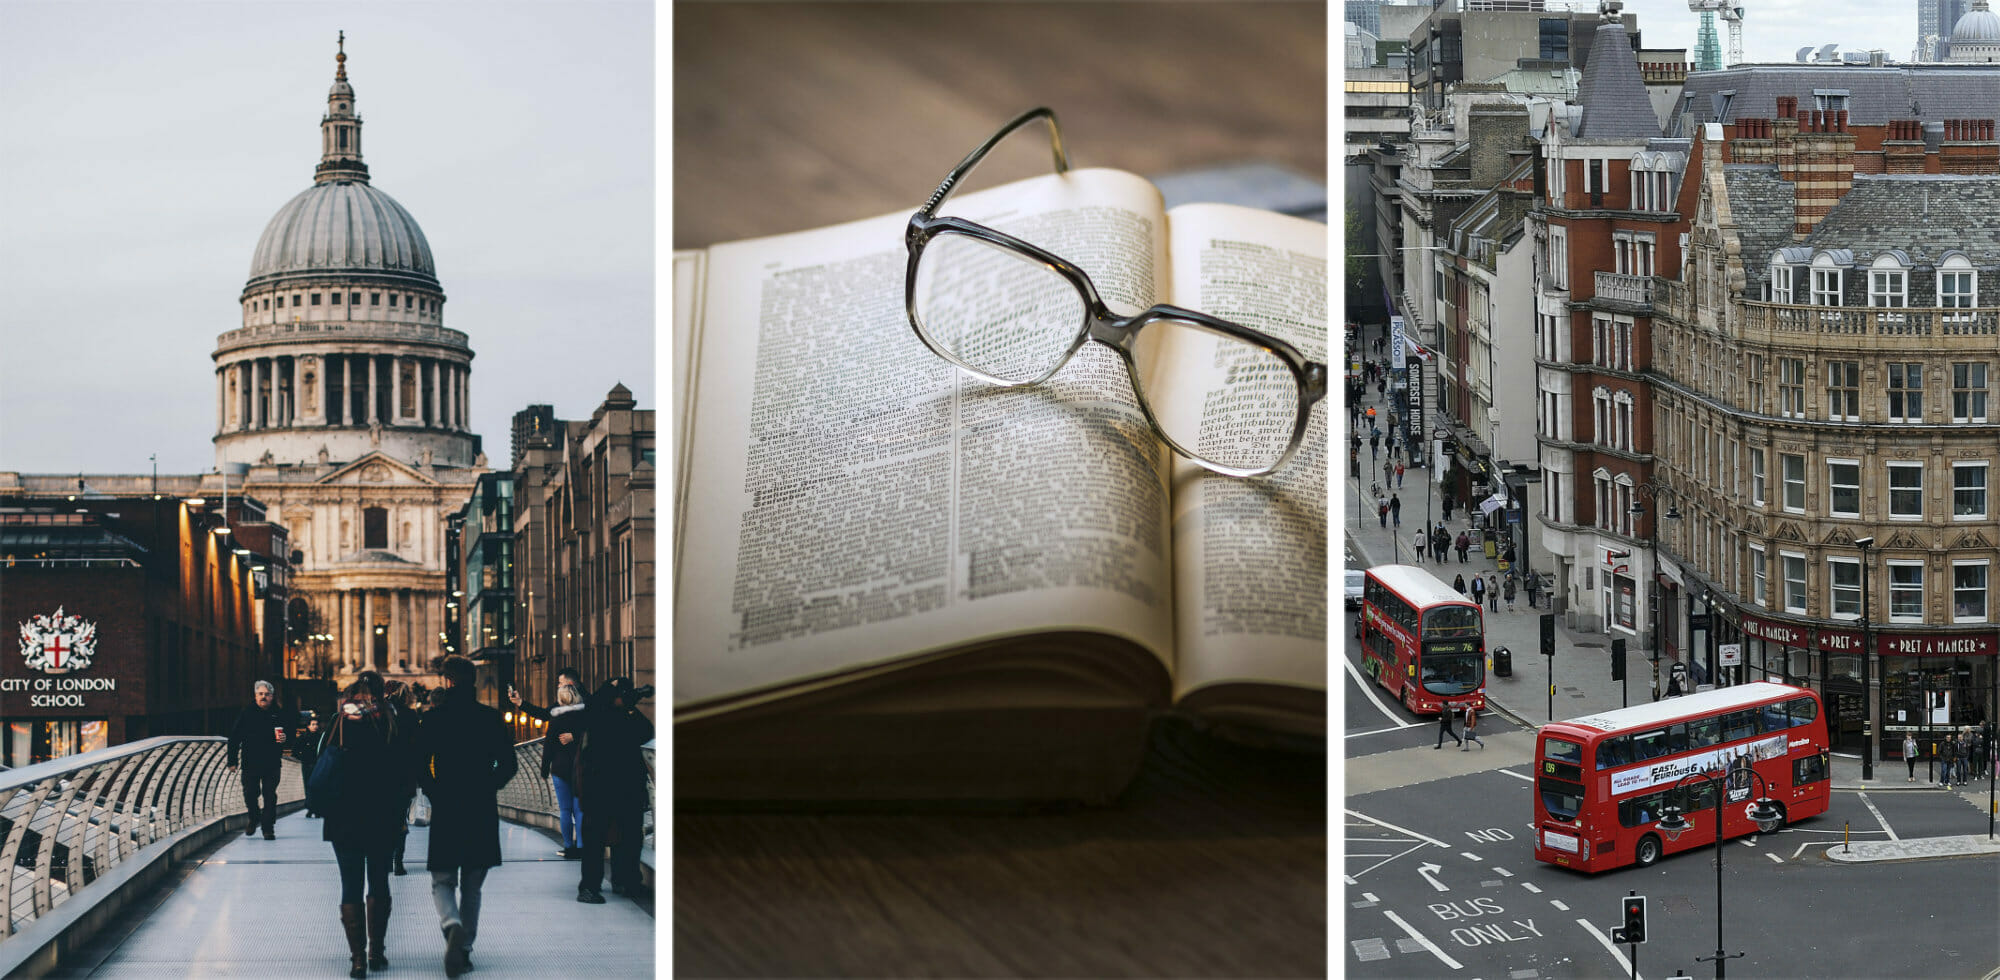 41+ Fun and Interesting Facts about London, England via @girlsgonelondon